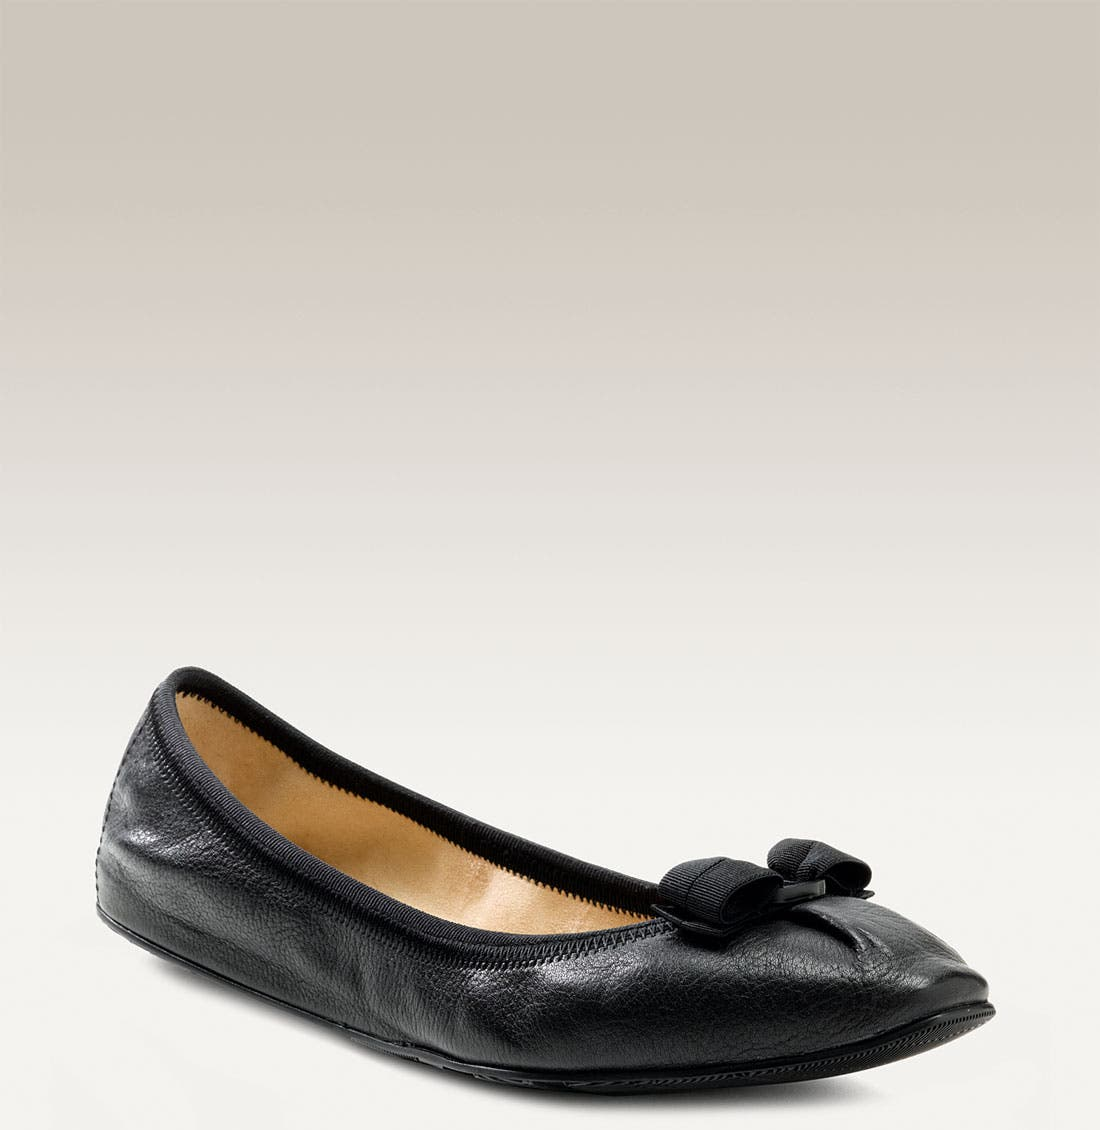 Alternate Image 1 Selected - Salvatore Ferragamo Scrunch Skimmer Flat (Women)